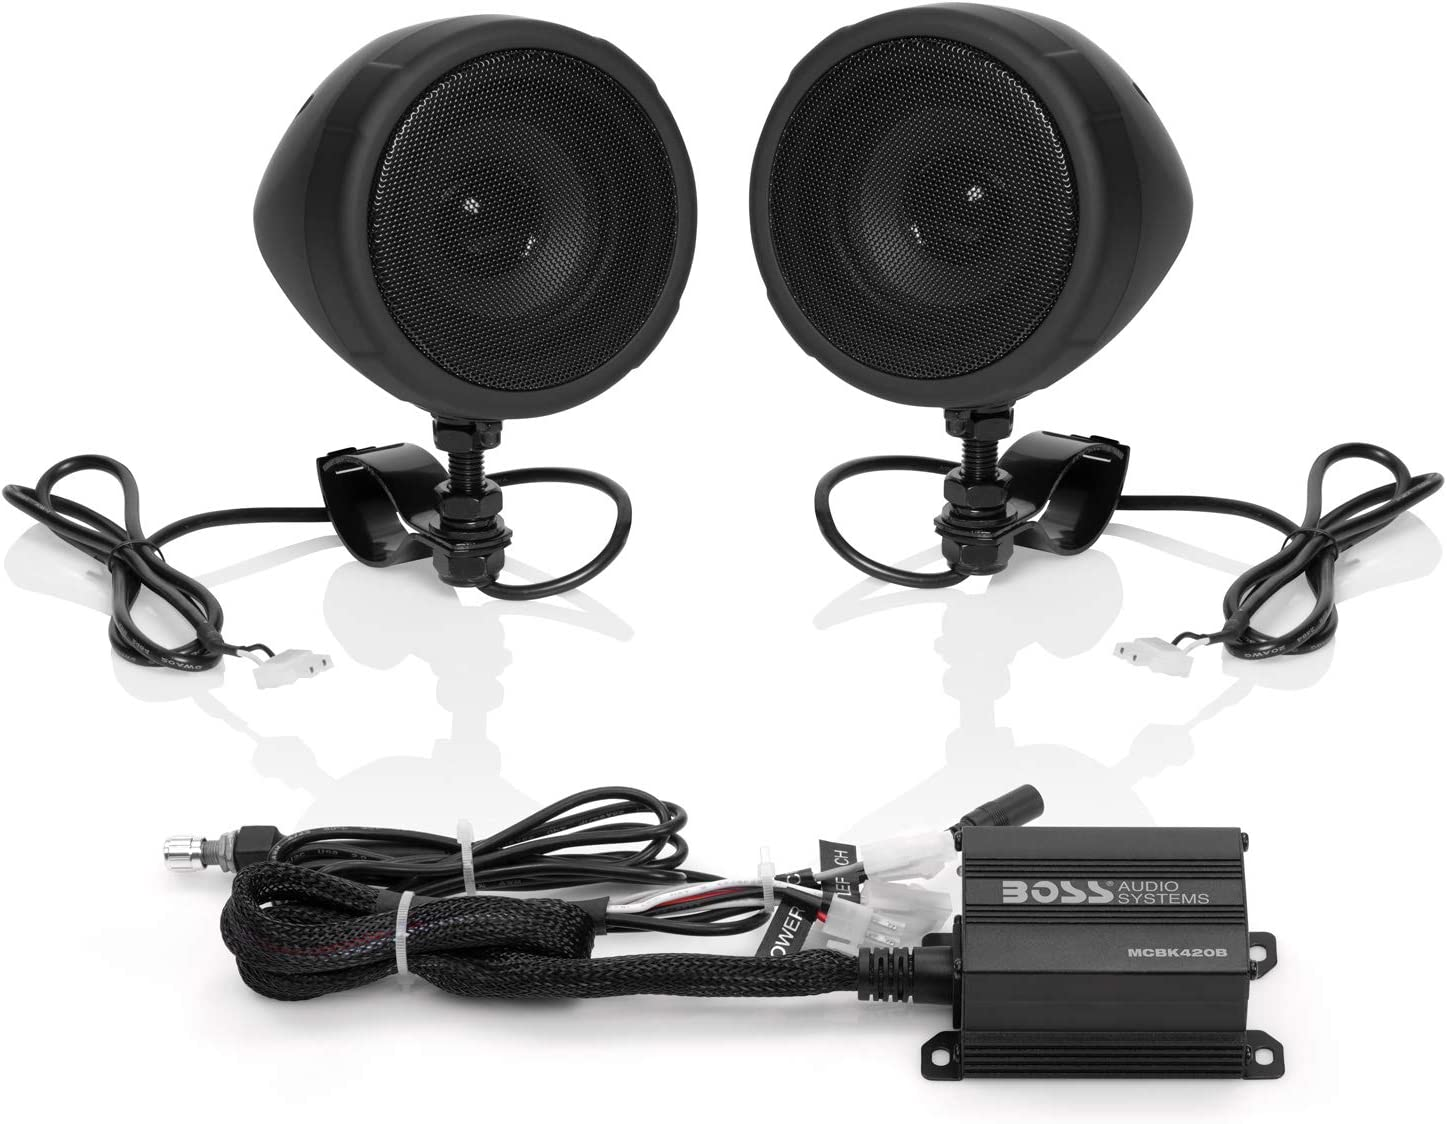 Boss Audio Systems MCBK420B Motorcycle Bluetooth Speakers